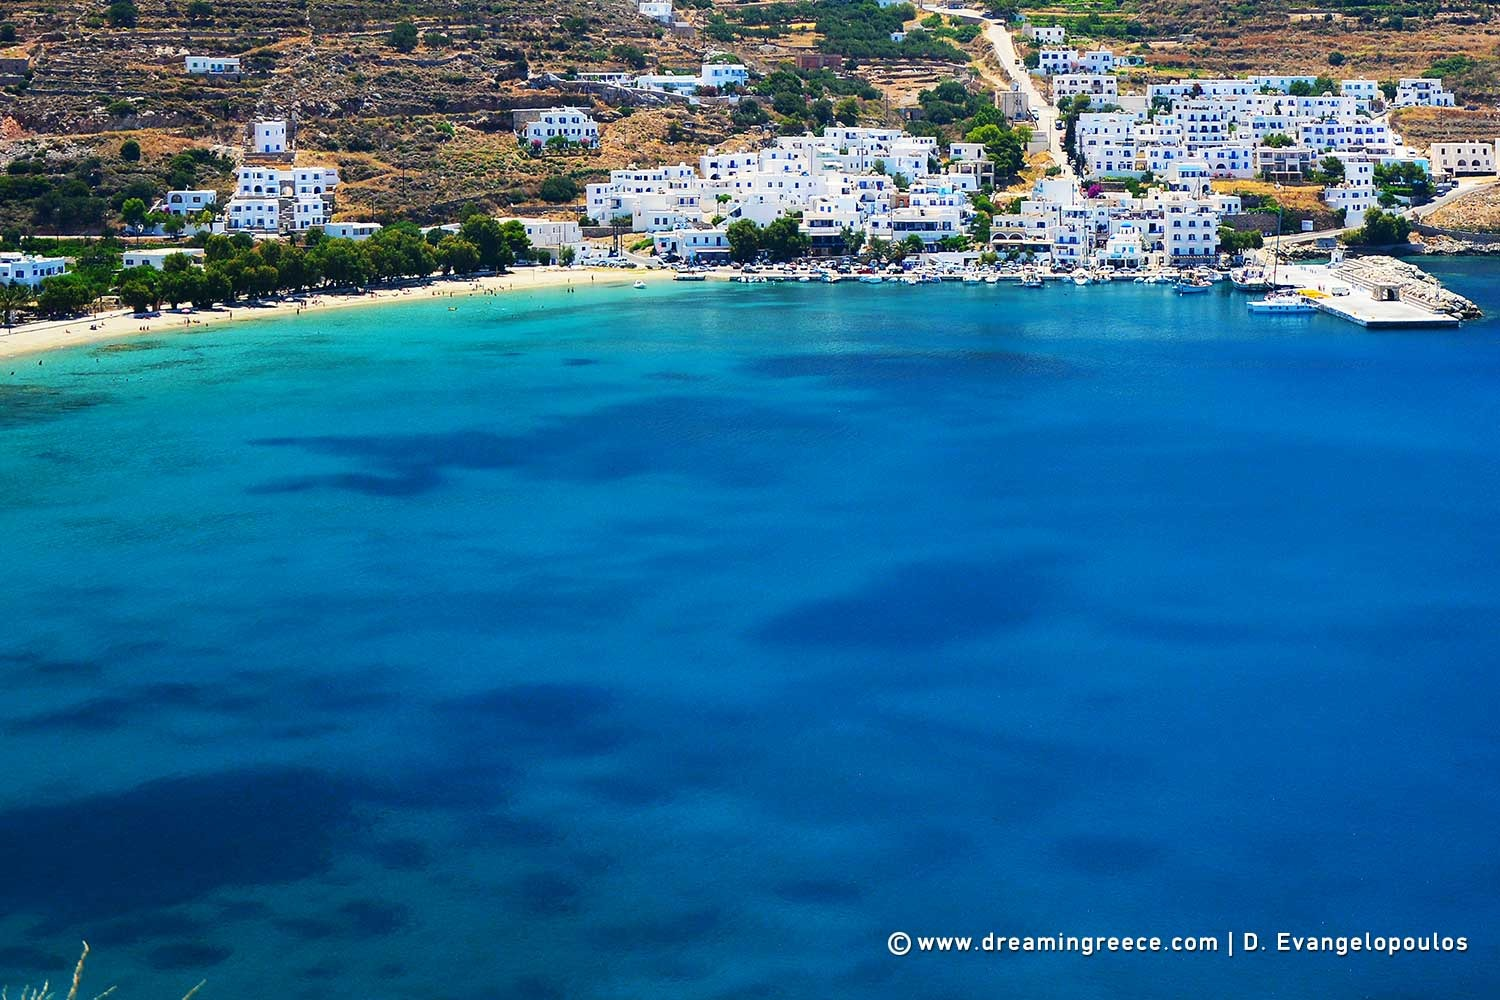 Holidays in Amorgos island Greece Greek islands DreamInGreece